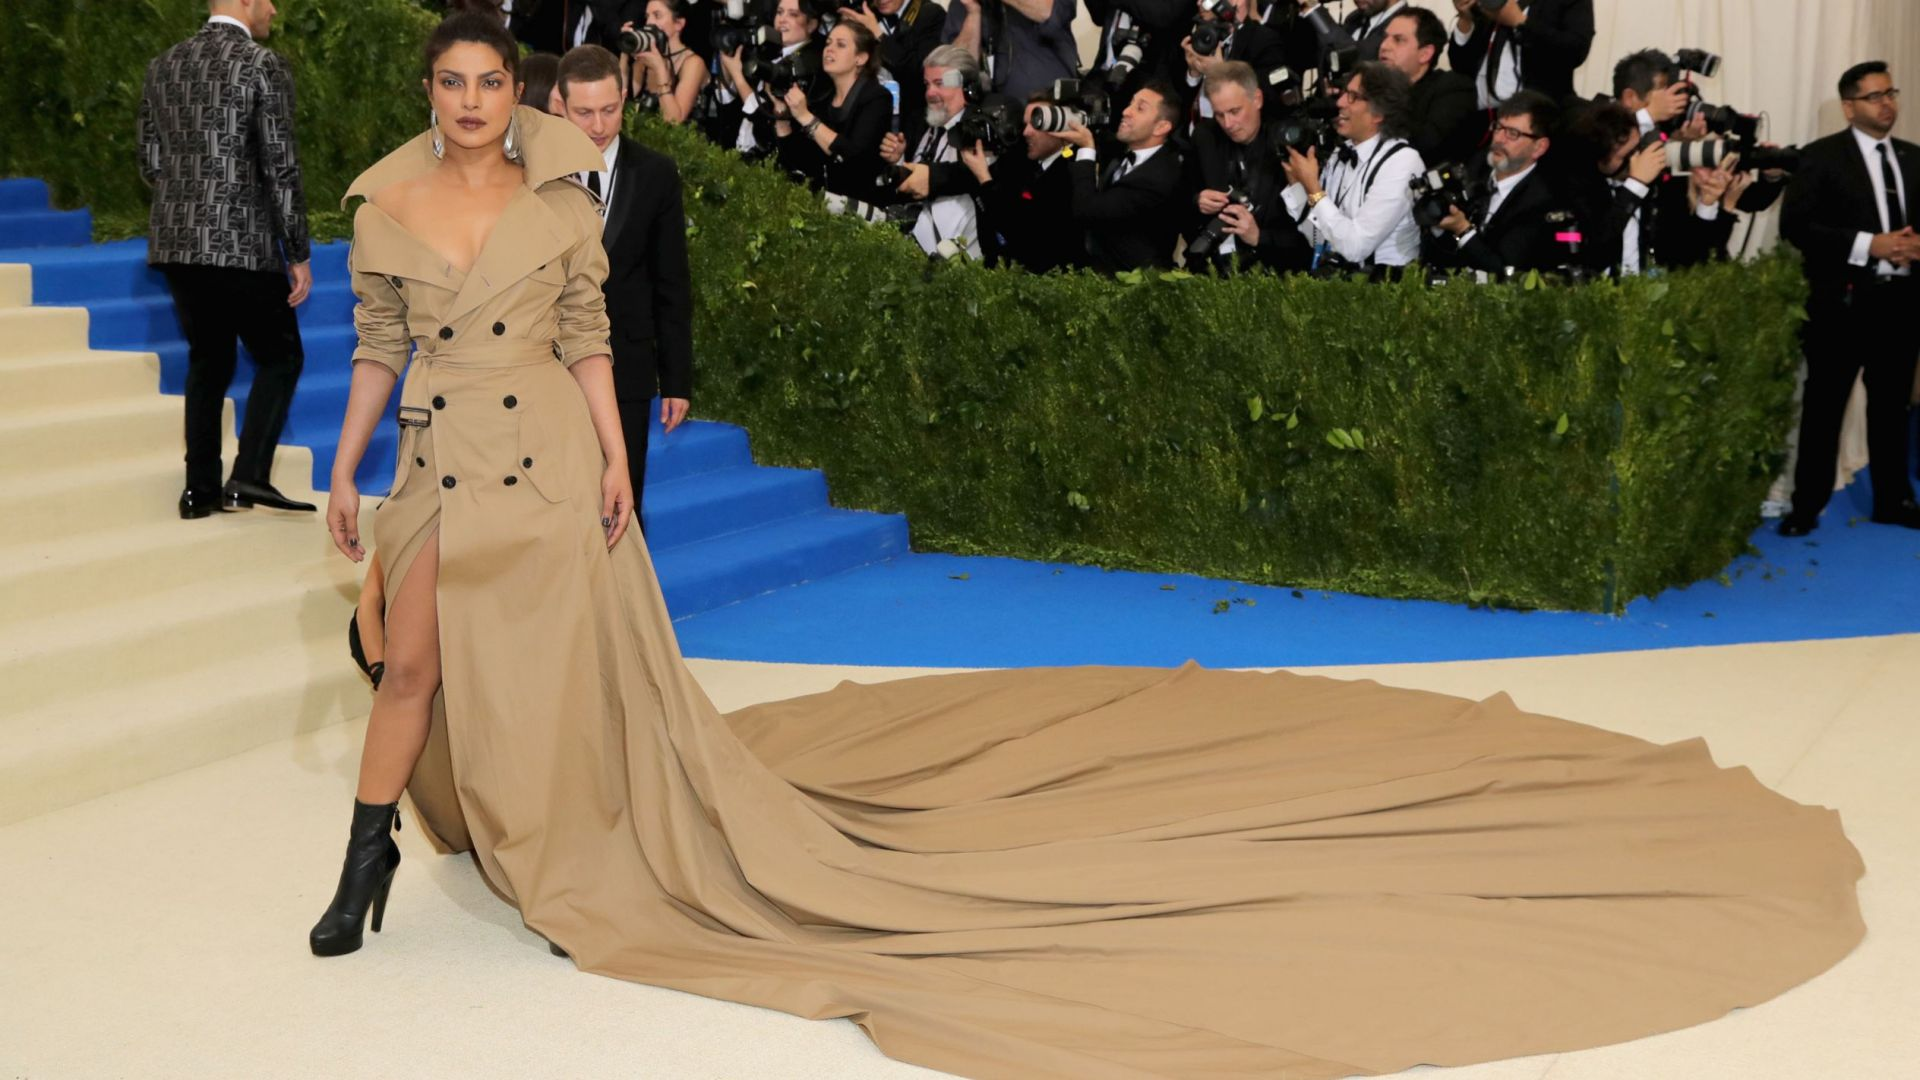 Приянка Чопра, Met Gala 2017, платье, красная дорожка, Priyanka Chopra, Met Gala 2017, dress, red carpet (horizontal)